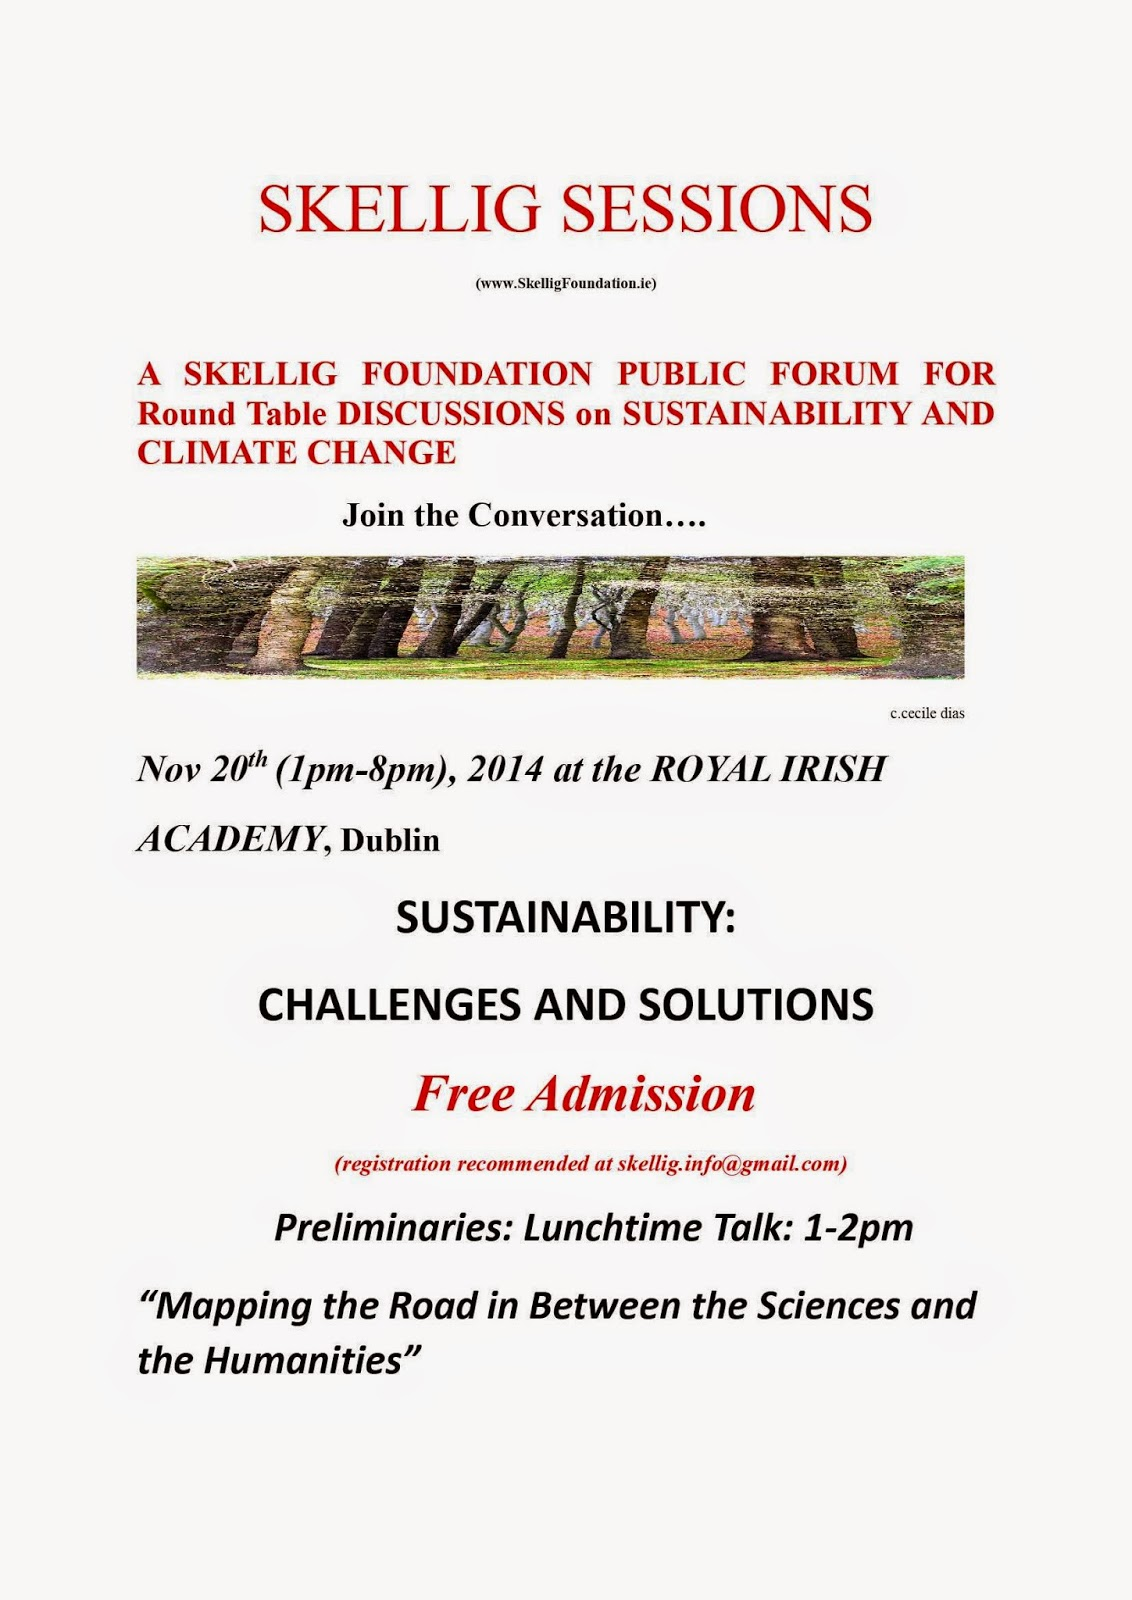 Uncategorized Irish Riddles genealogydiscussion 2014 sustainability conference in dublins royal irish academy november 20th jeremy irons is a key sponsor and may well be there